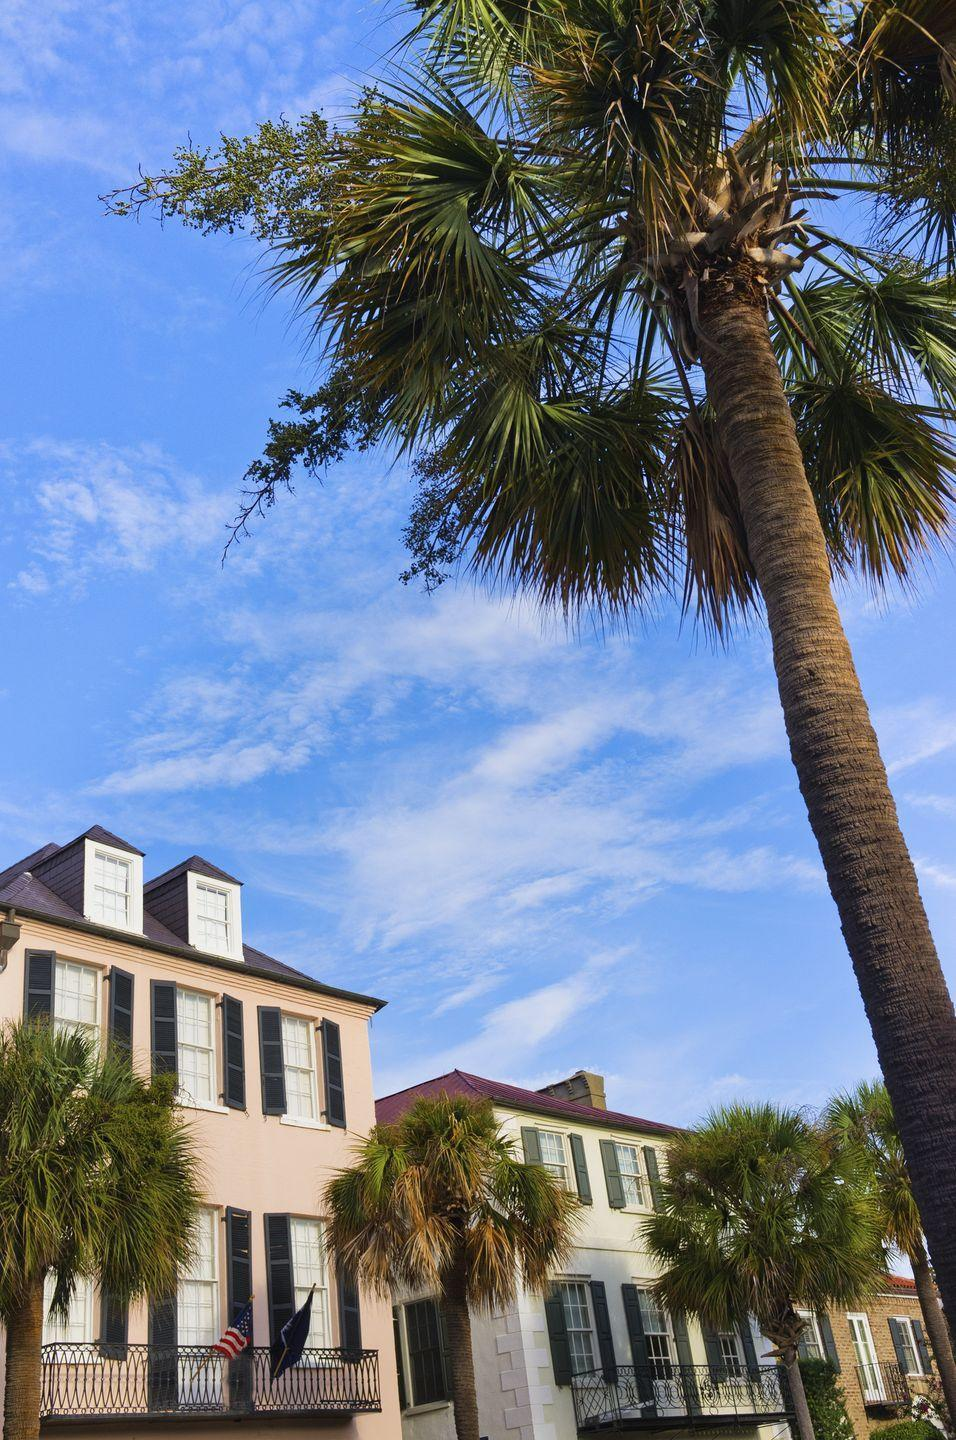 """<p><strong>Where:</strong> <a href=""""https://www.countryliving.com/life/travel/a35346/25-photos-that-prove-charleston-sc-is-the-most-charming-city-ever/"""" rel=""""nofollow noopener"""" target=""""_blank"""" data-ylk=""""slk:Charleston, South Carolina"""" class=""""link rapid-noclick-resp"""">Charleston, South Carolina</a></p><p><strong>Why We Love It: </strong>With cobblestone-lined streets and Antebellum houses in more shades of pastel than you can count, t<a href=""""https://www.countryliving.com/life/travel/g4002/under-the-radar-southern-cities-for-girlfriend-getaways/"""" rel=""""nofollow noopener"""" target=""""_blank"""" data-ylk=""""slk:his small city practically defines Southern charm"""" class=""""link rapid-noclick-resp"""">his small city practically defines Southern charm</a>.</p>"""